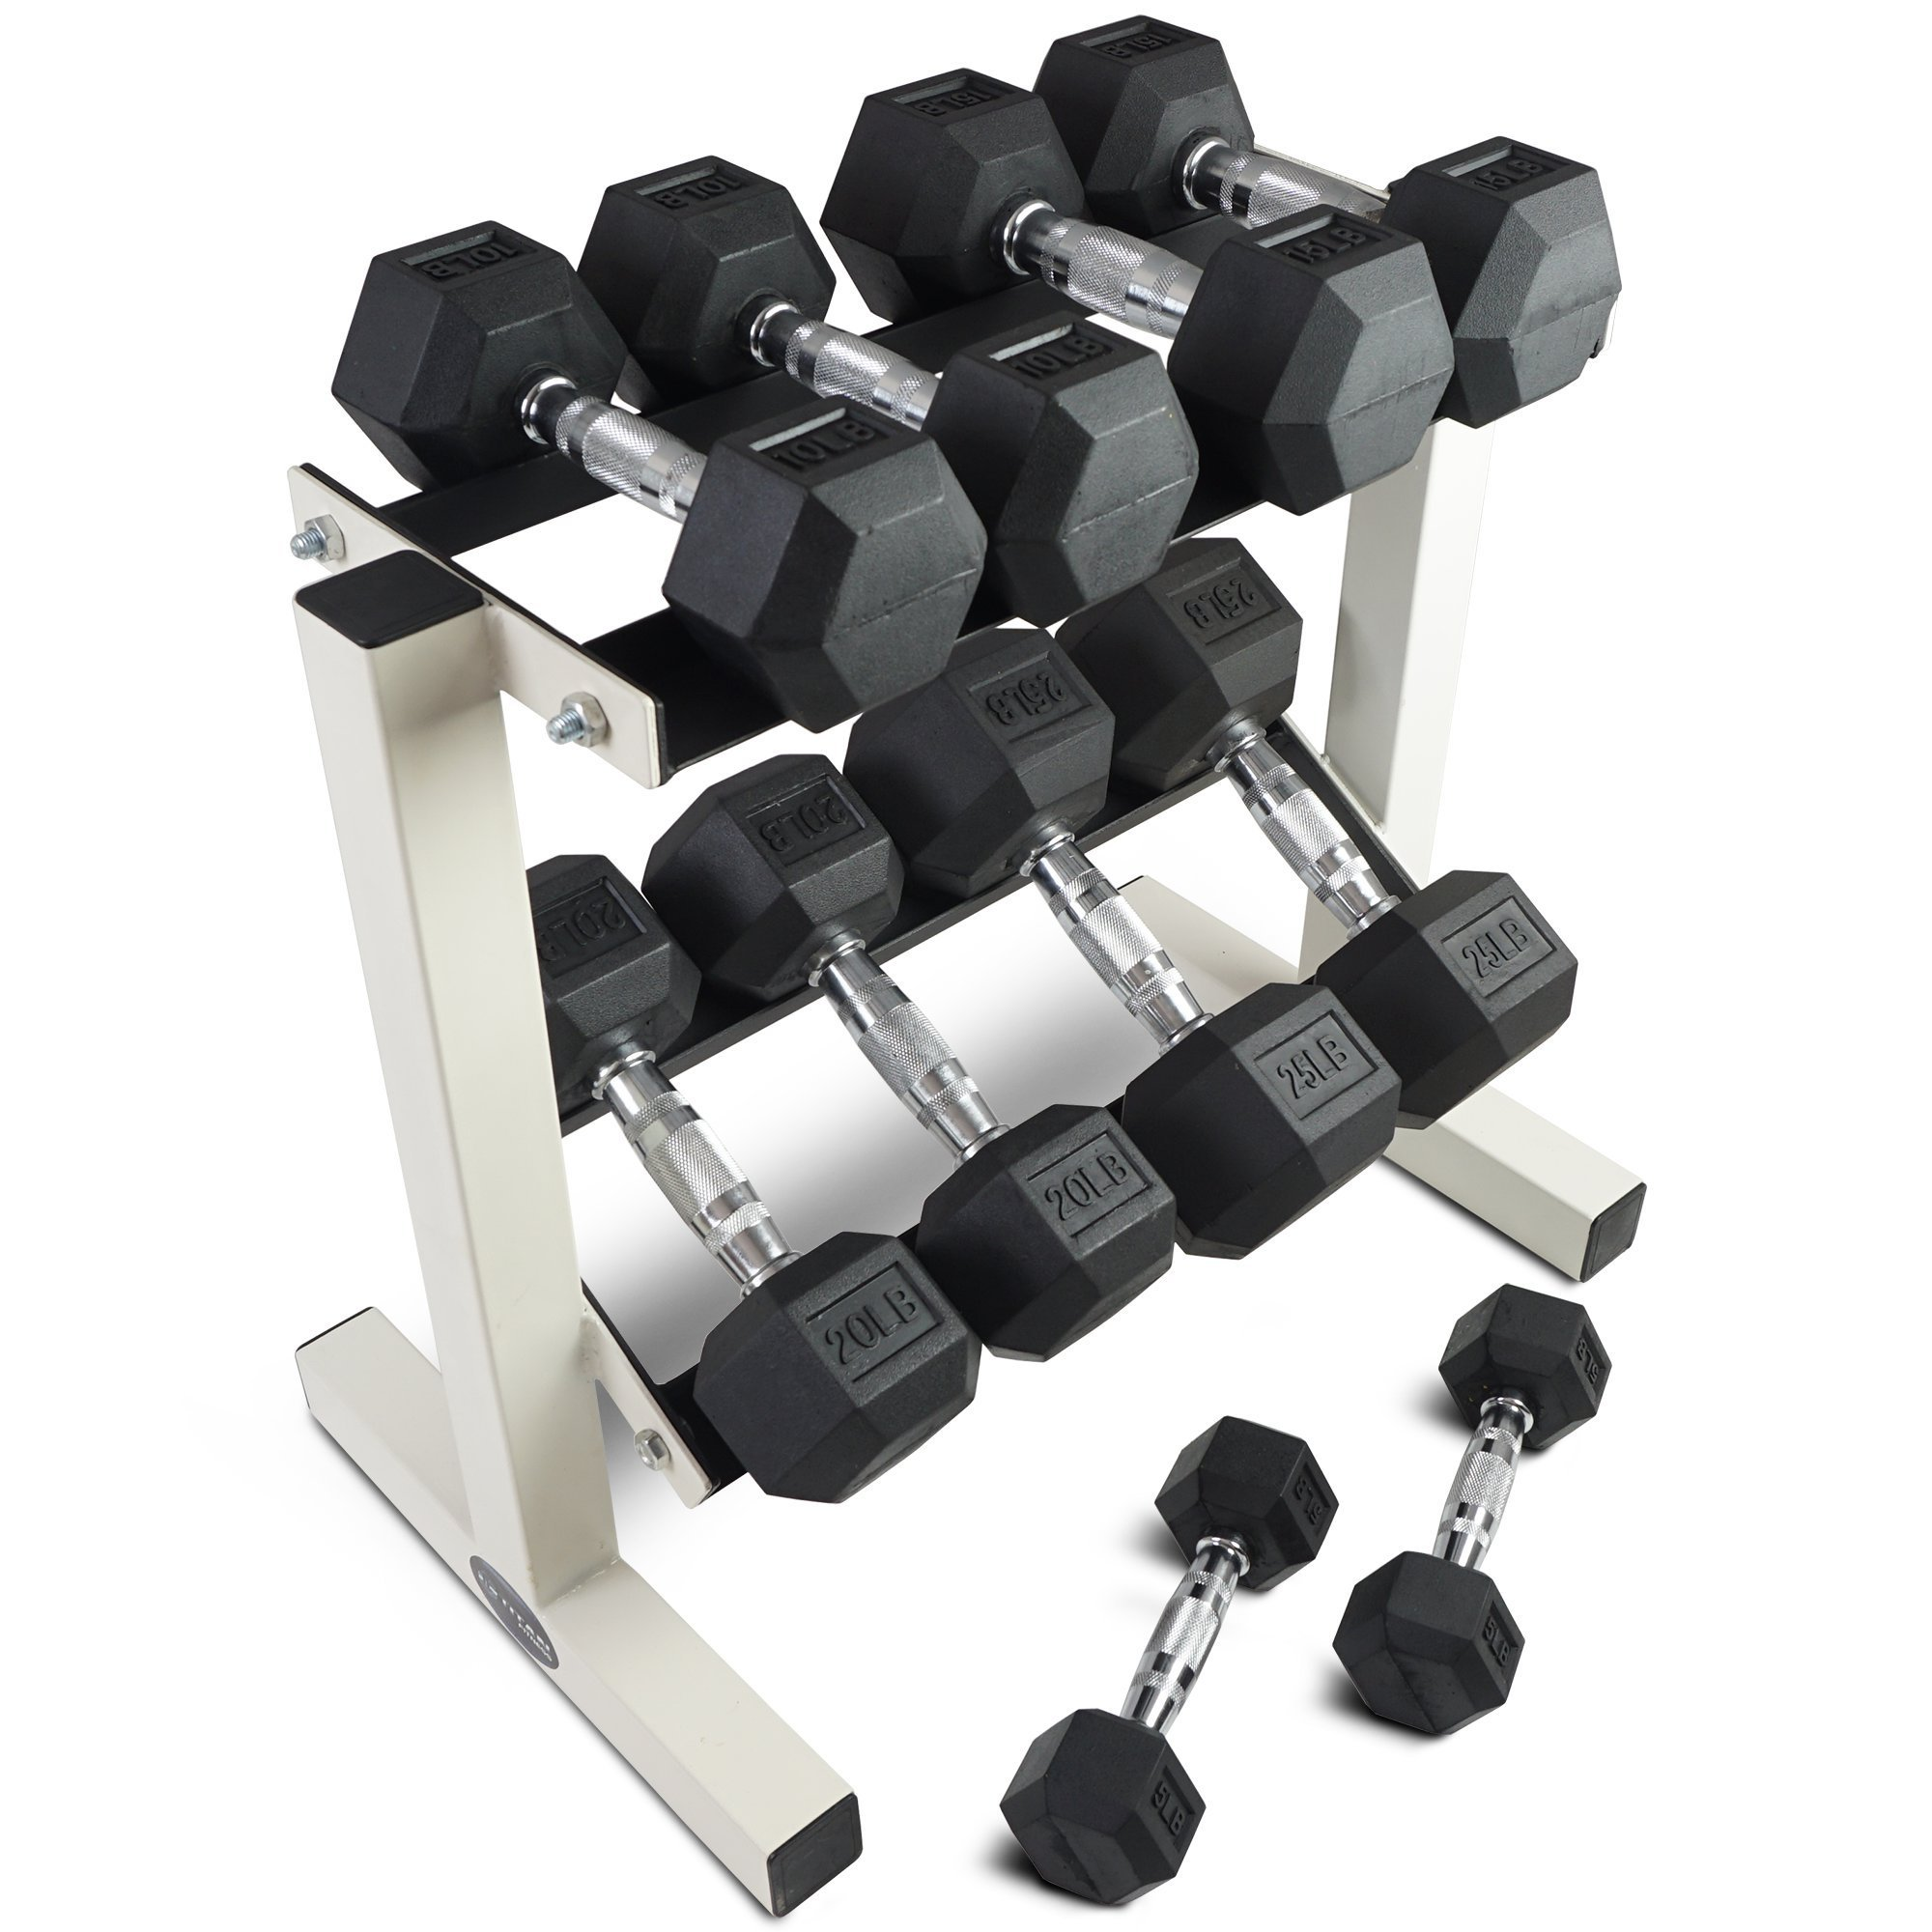 Rubber Coated Hex Dumbbell Weights Training Set w/ Rack 5 - 25 lb Titan Fitness by Titan Fitness